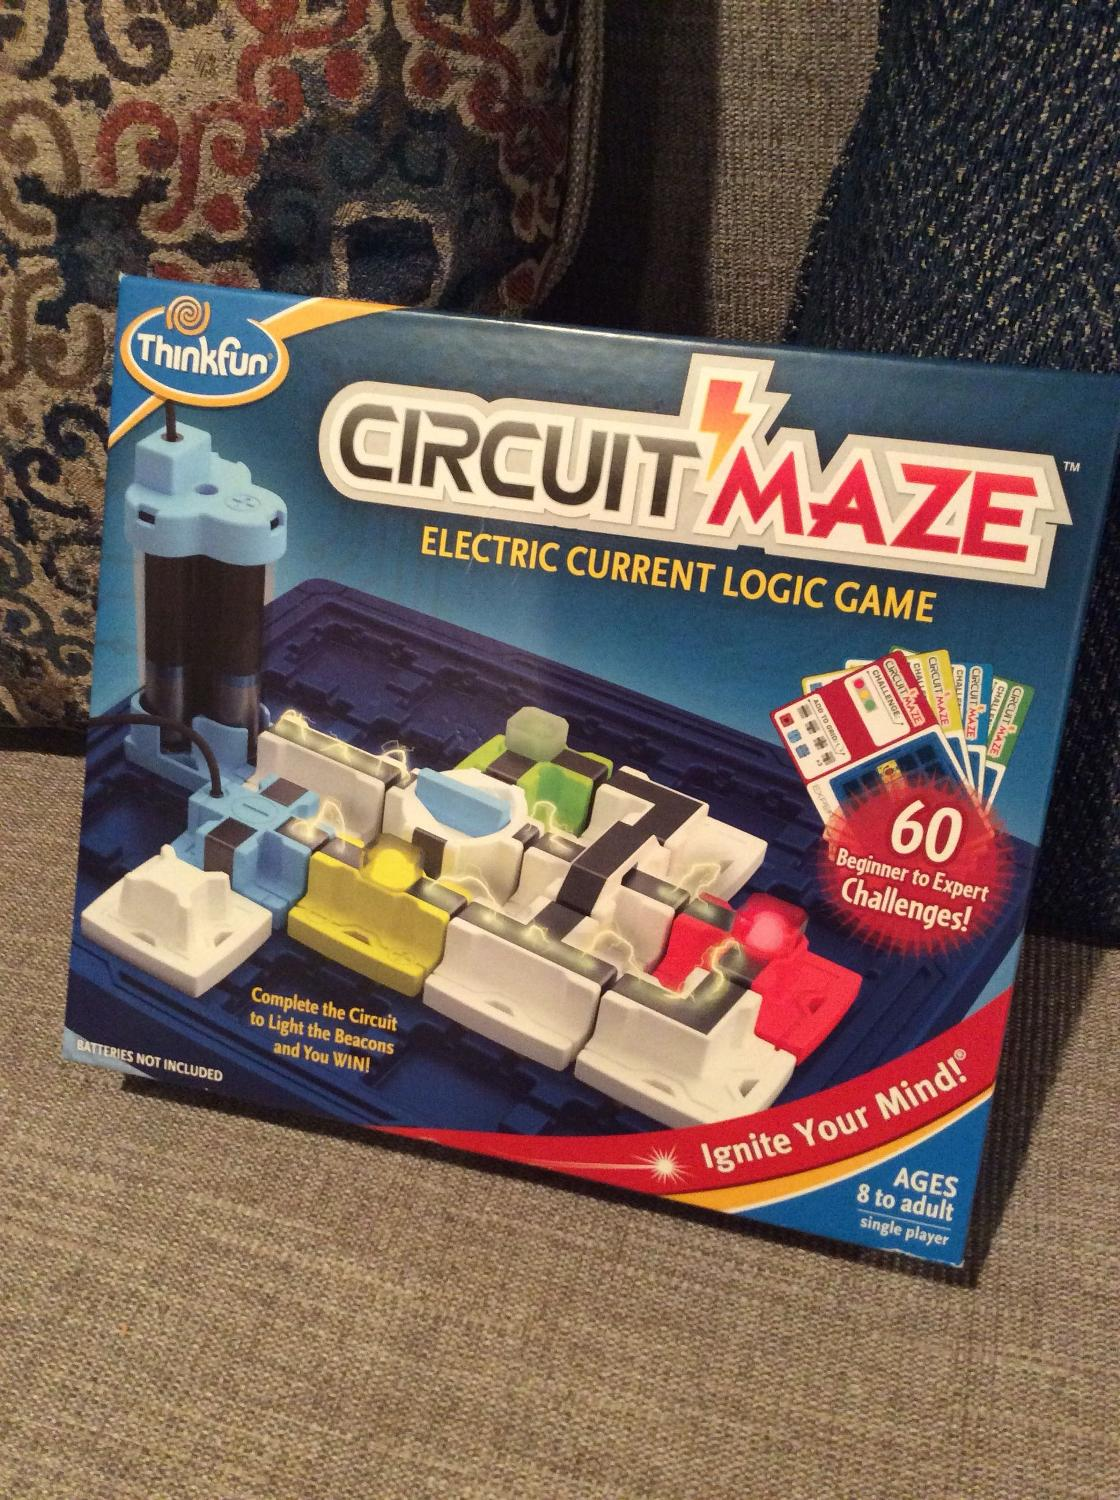 Find More Circuit Maze Electric Current Logic Game For Sale At Up To 90 Off